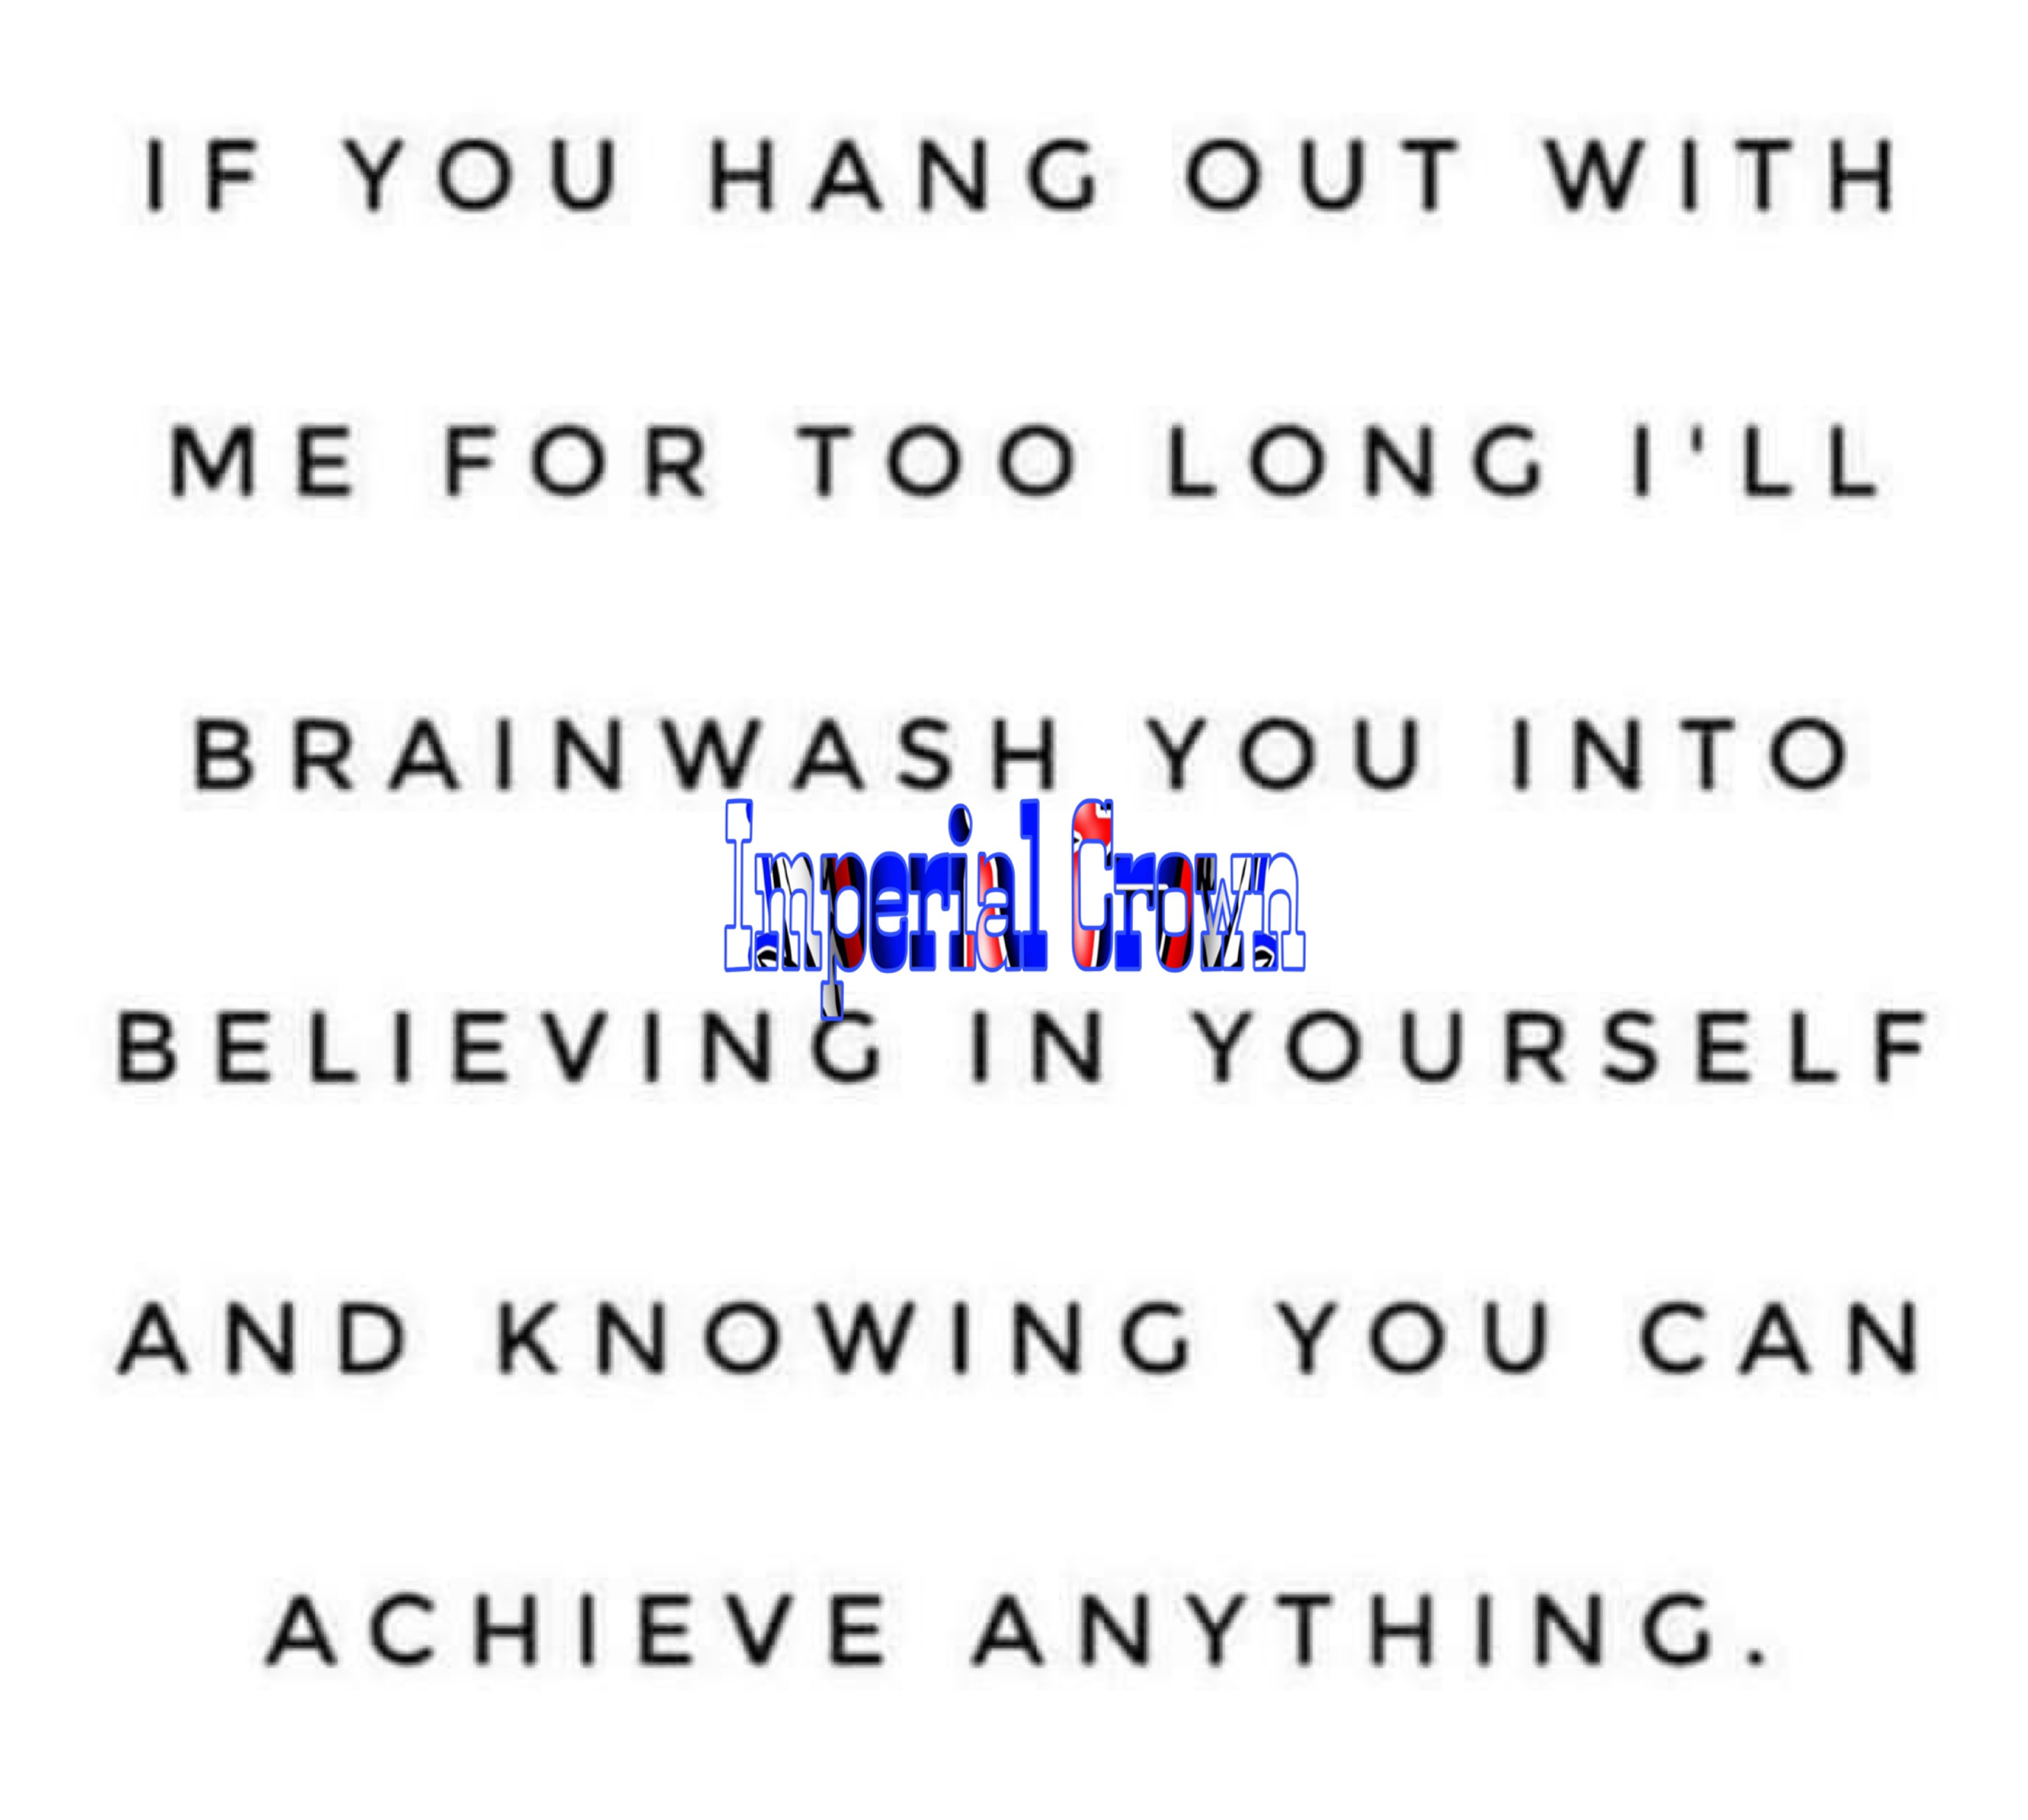 If you hang out with me for Too long I'll brainwash you into believing in yourself and knowing you can